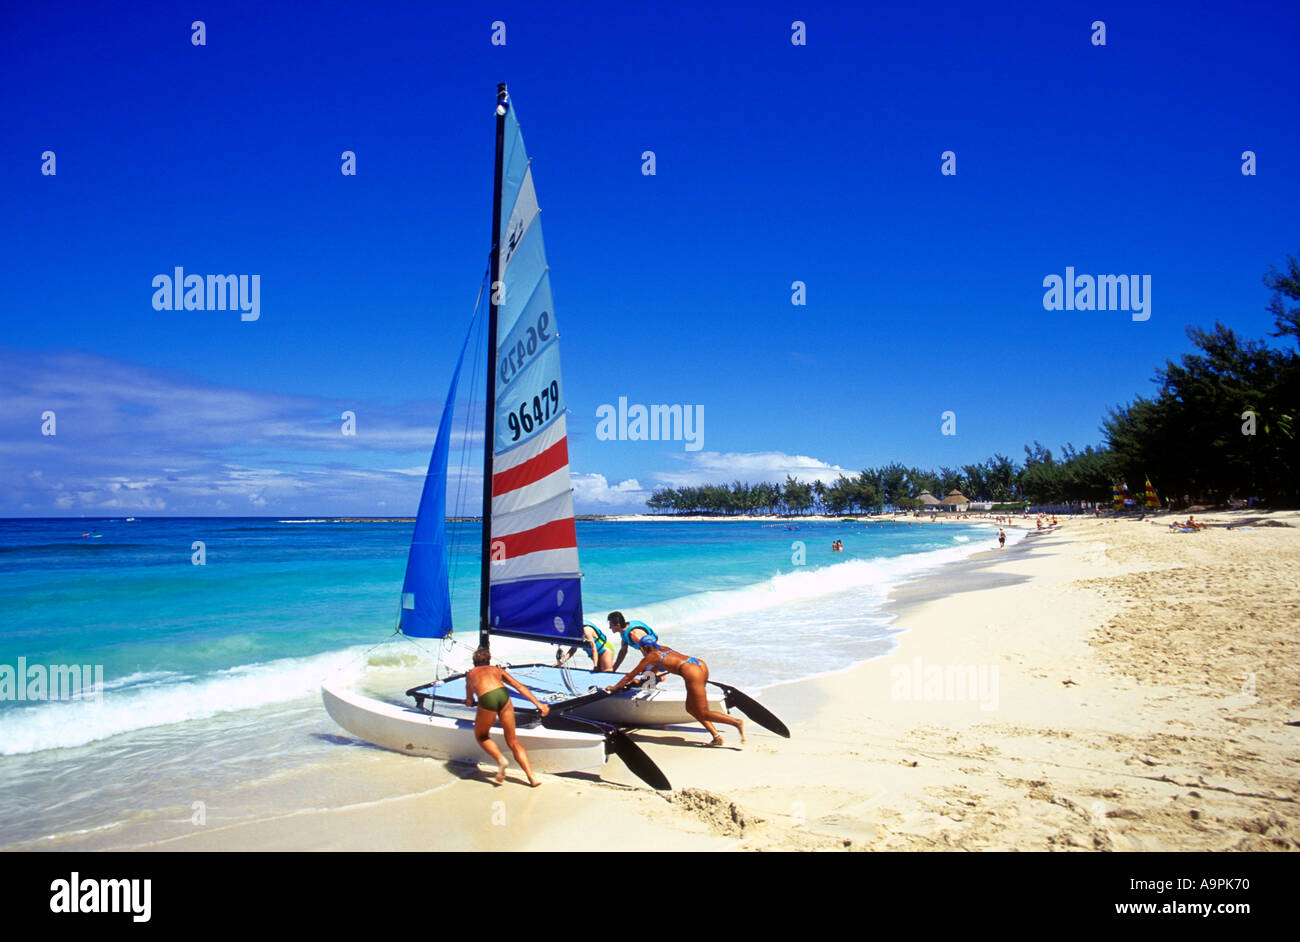 Bahamas Nassau beach scene group of four people pushing a catamaran into the sea - Stock Image